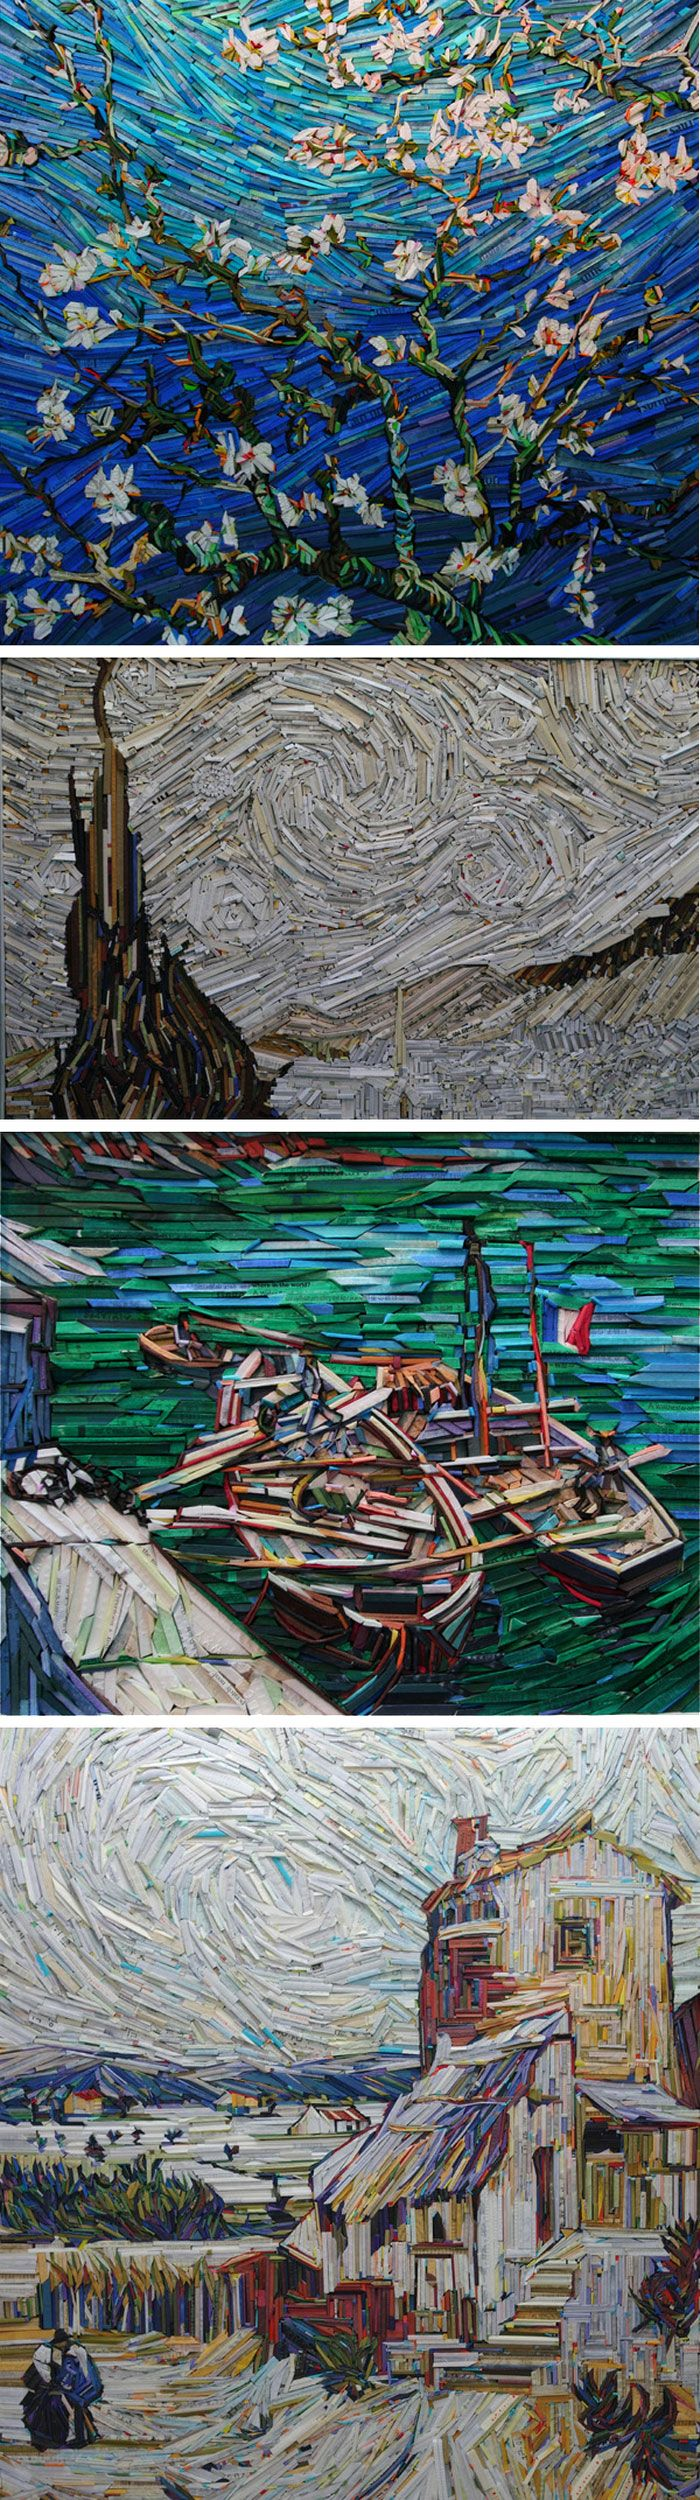 Korean artist Lee Kyu-Hak recreates paintings such as Van Gogh's Sunflowers using wood blocks wrapped in coloured newspaper: - Kyu Hack art with woodBranches with Almond Blossom - Starry night - Sand barges - Old mill